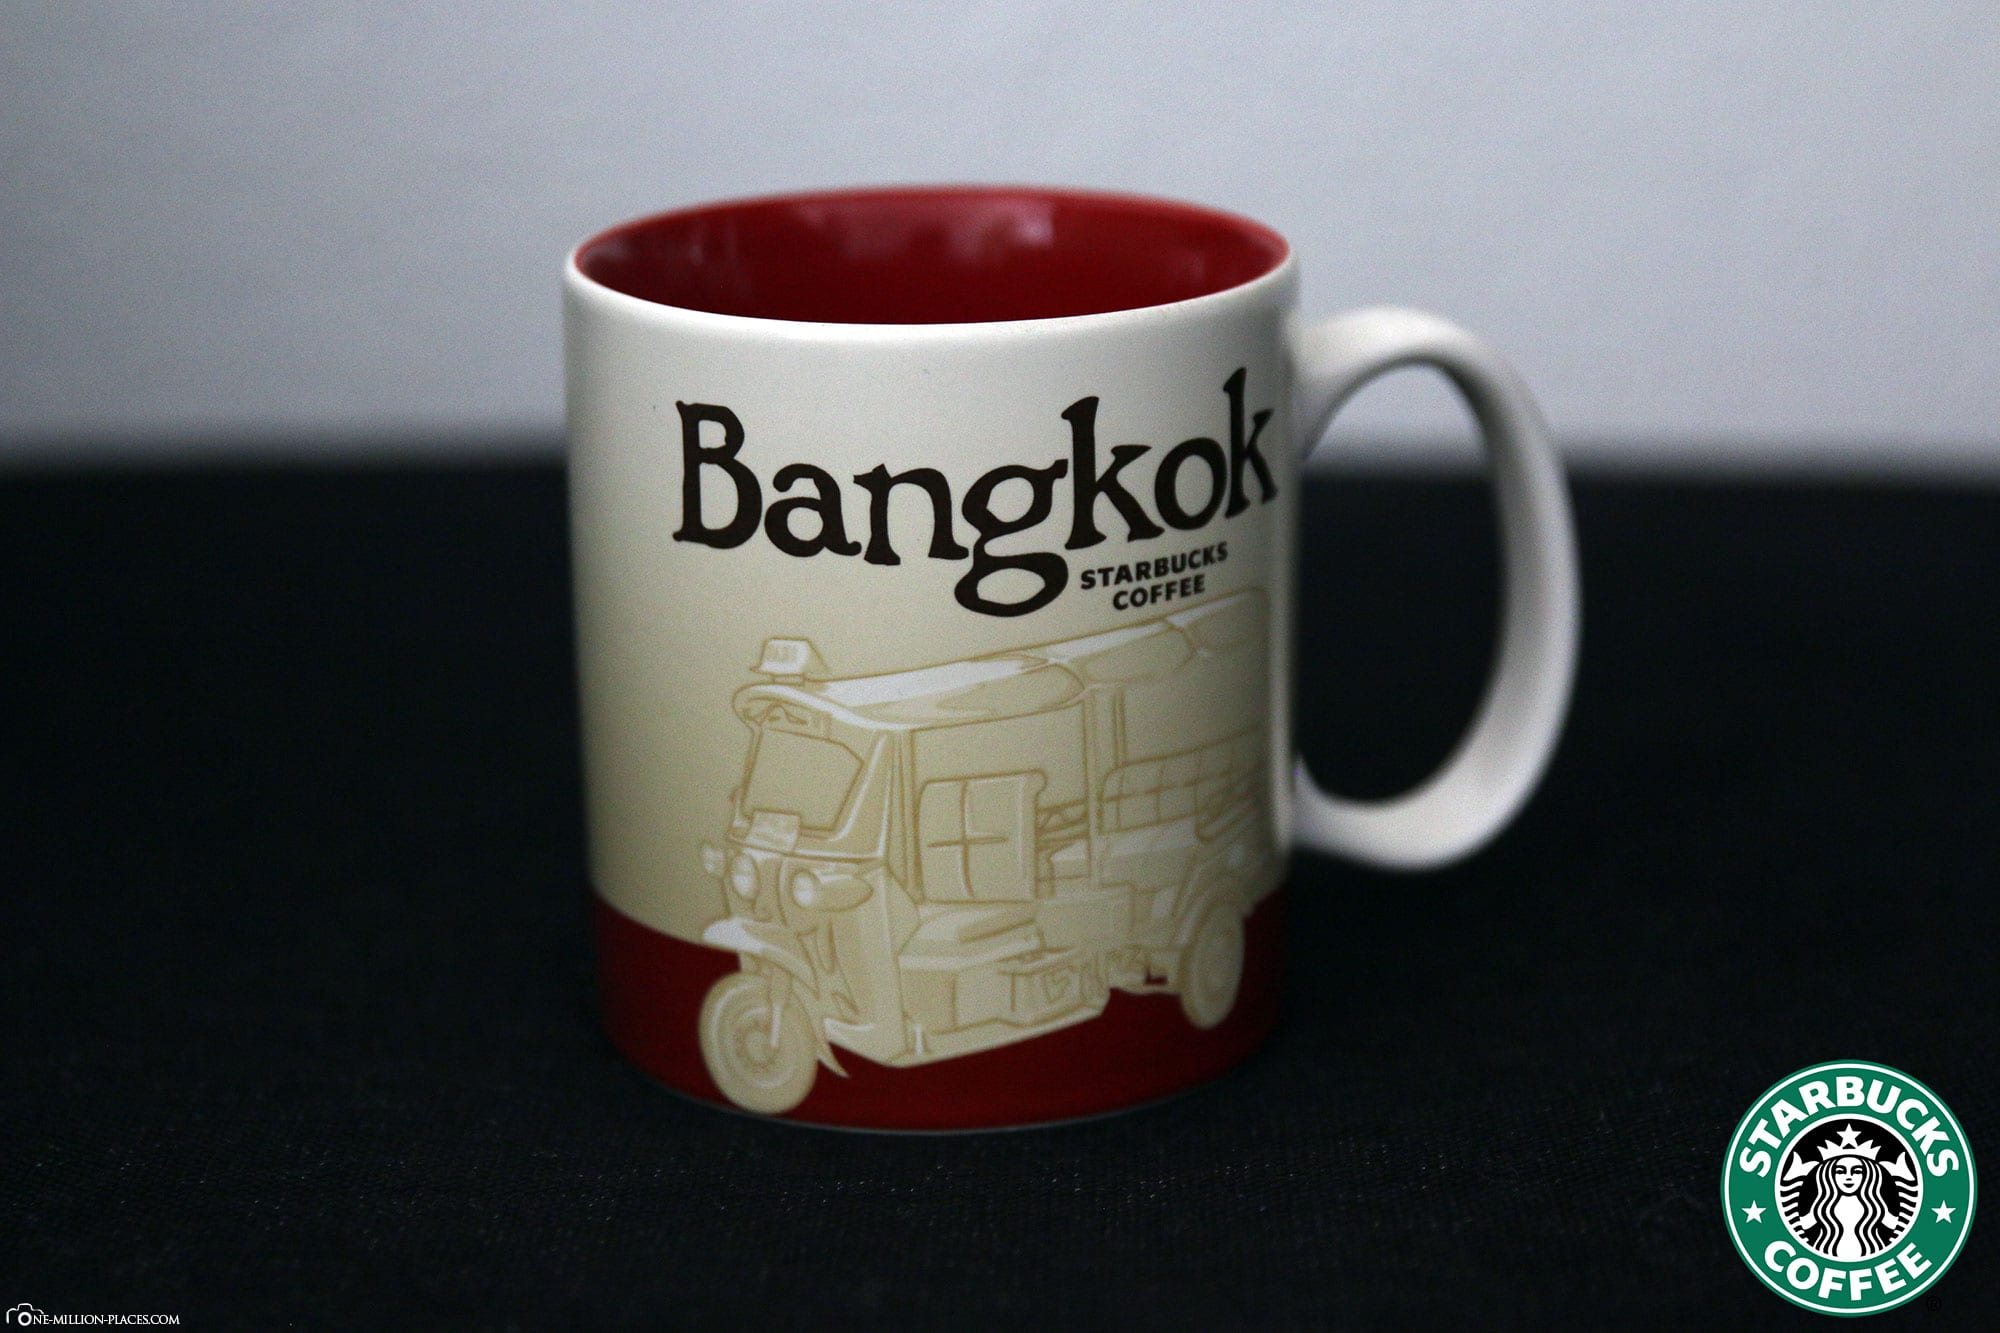 Bangkok, Starbucks Cup, Global Icon Series, City Mugs, Collection, Thailand, Travelreport